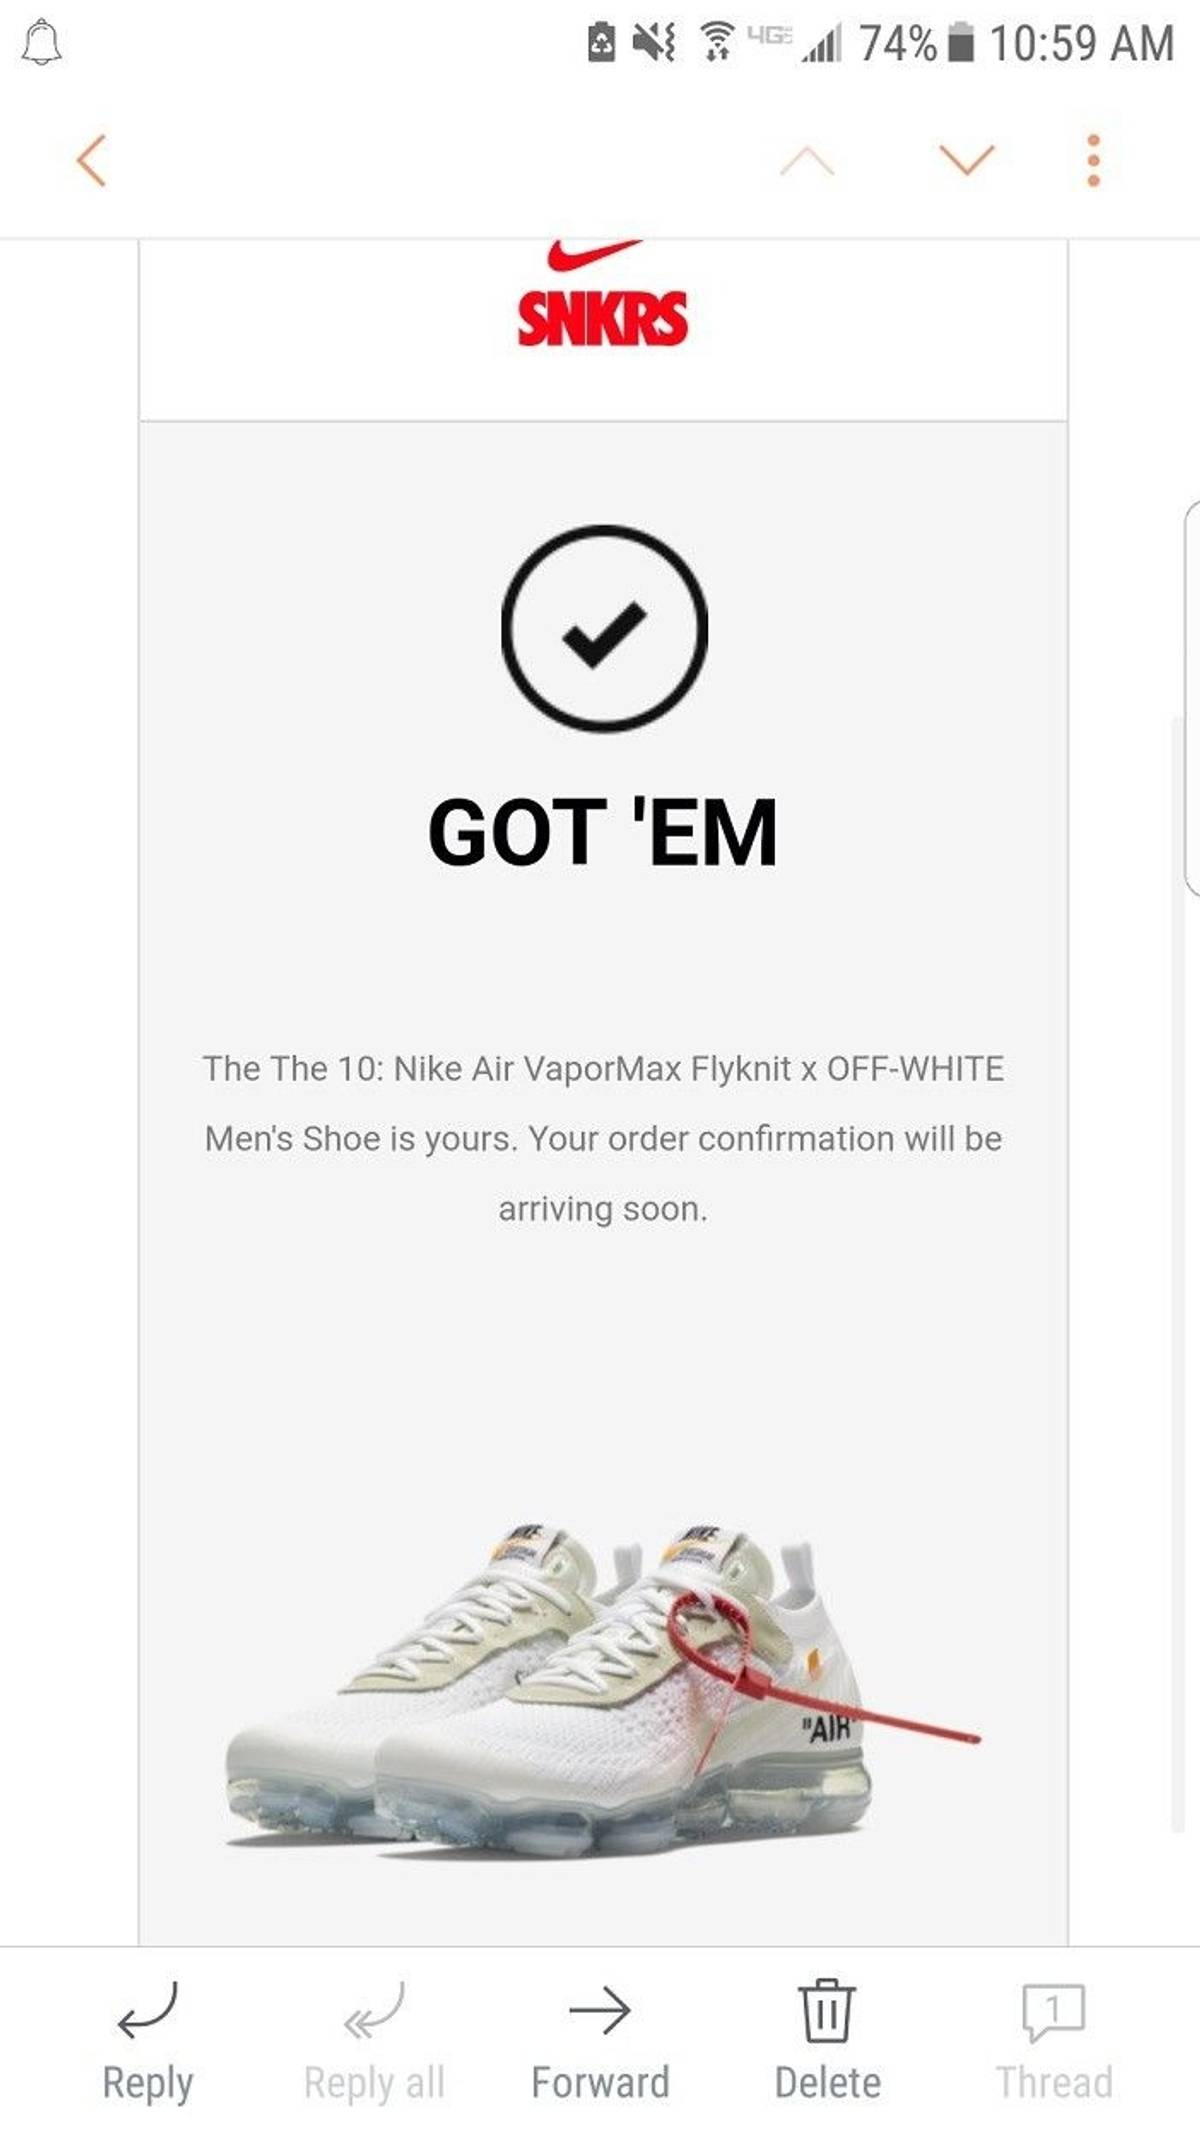 e509566fcde Nike The 10 Nike Air VaporMax Flyknit x OFF-WHITE Men s US Sz 10.5 Size 10.5  - Low-Top Sneakers for Sale - Grailed